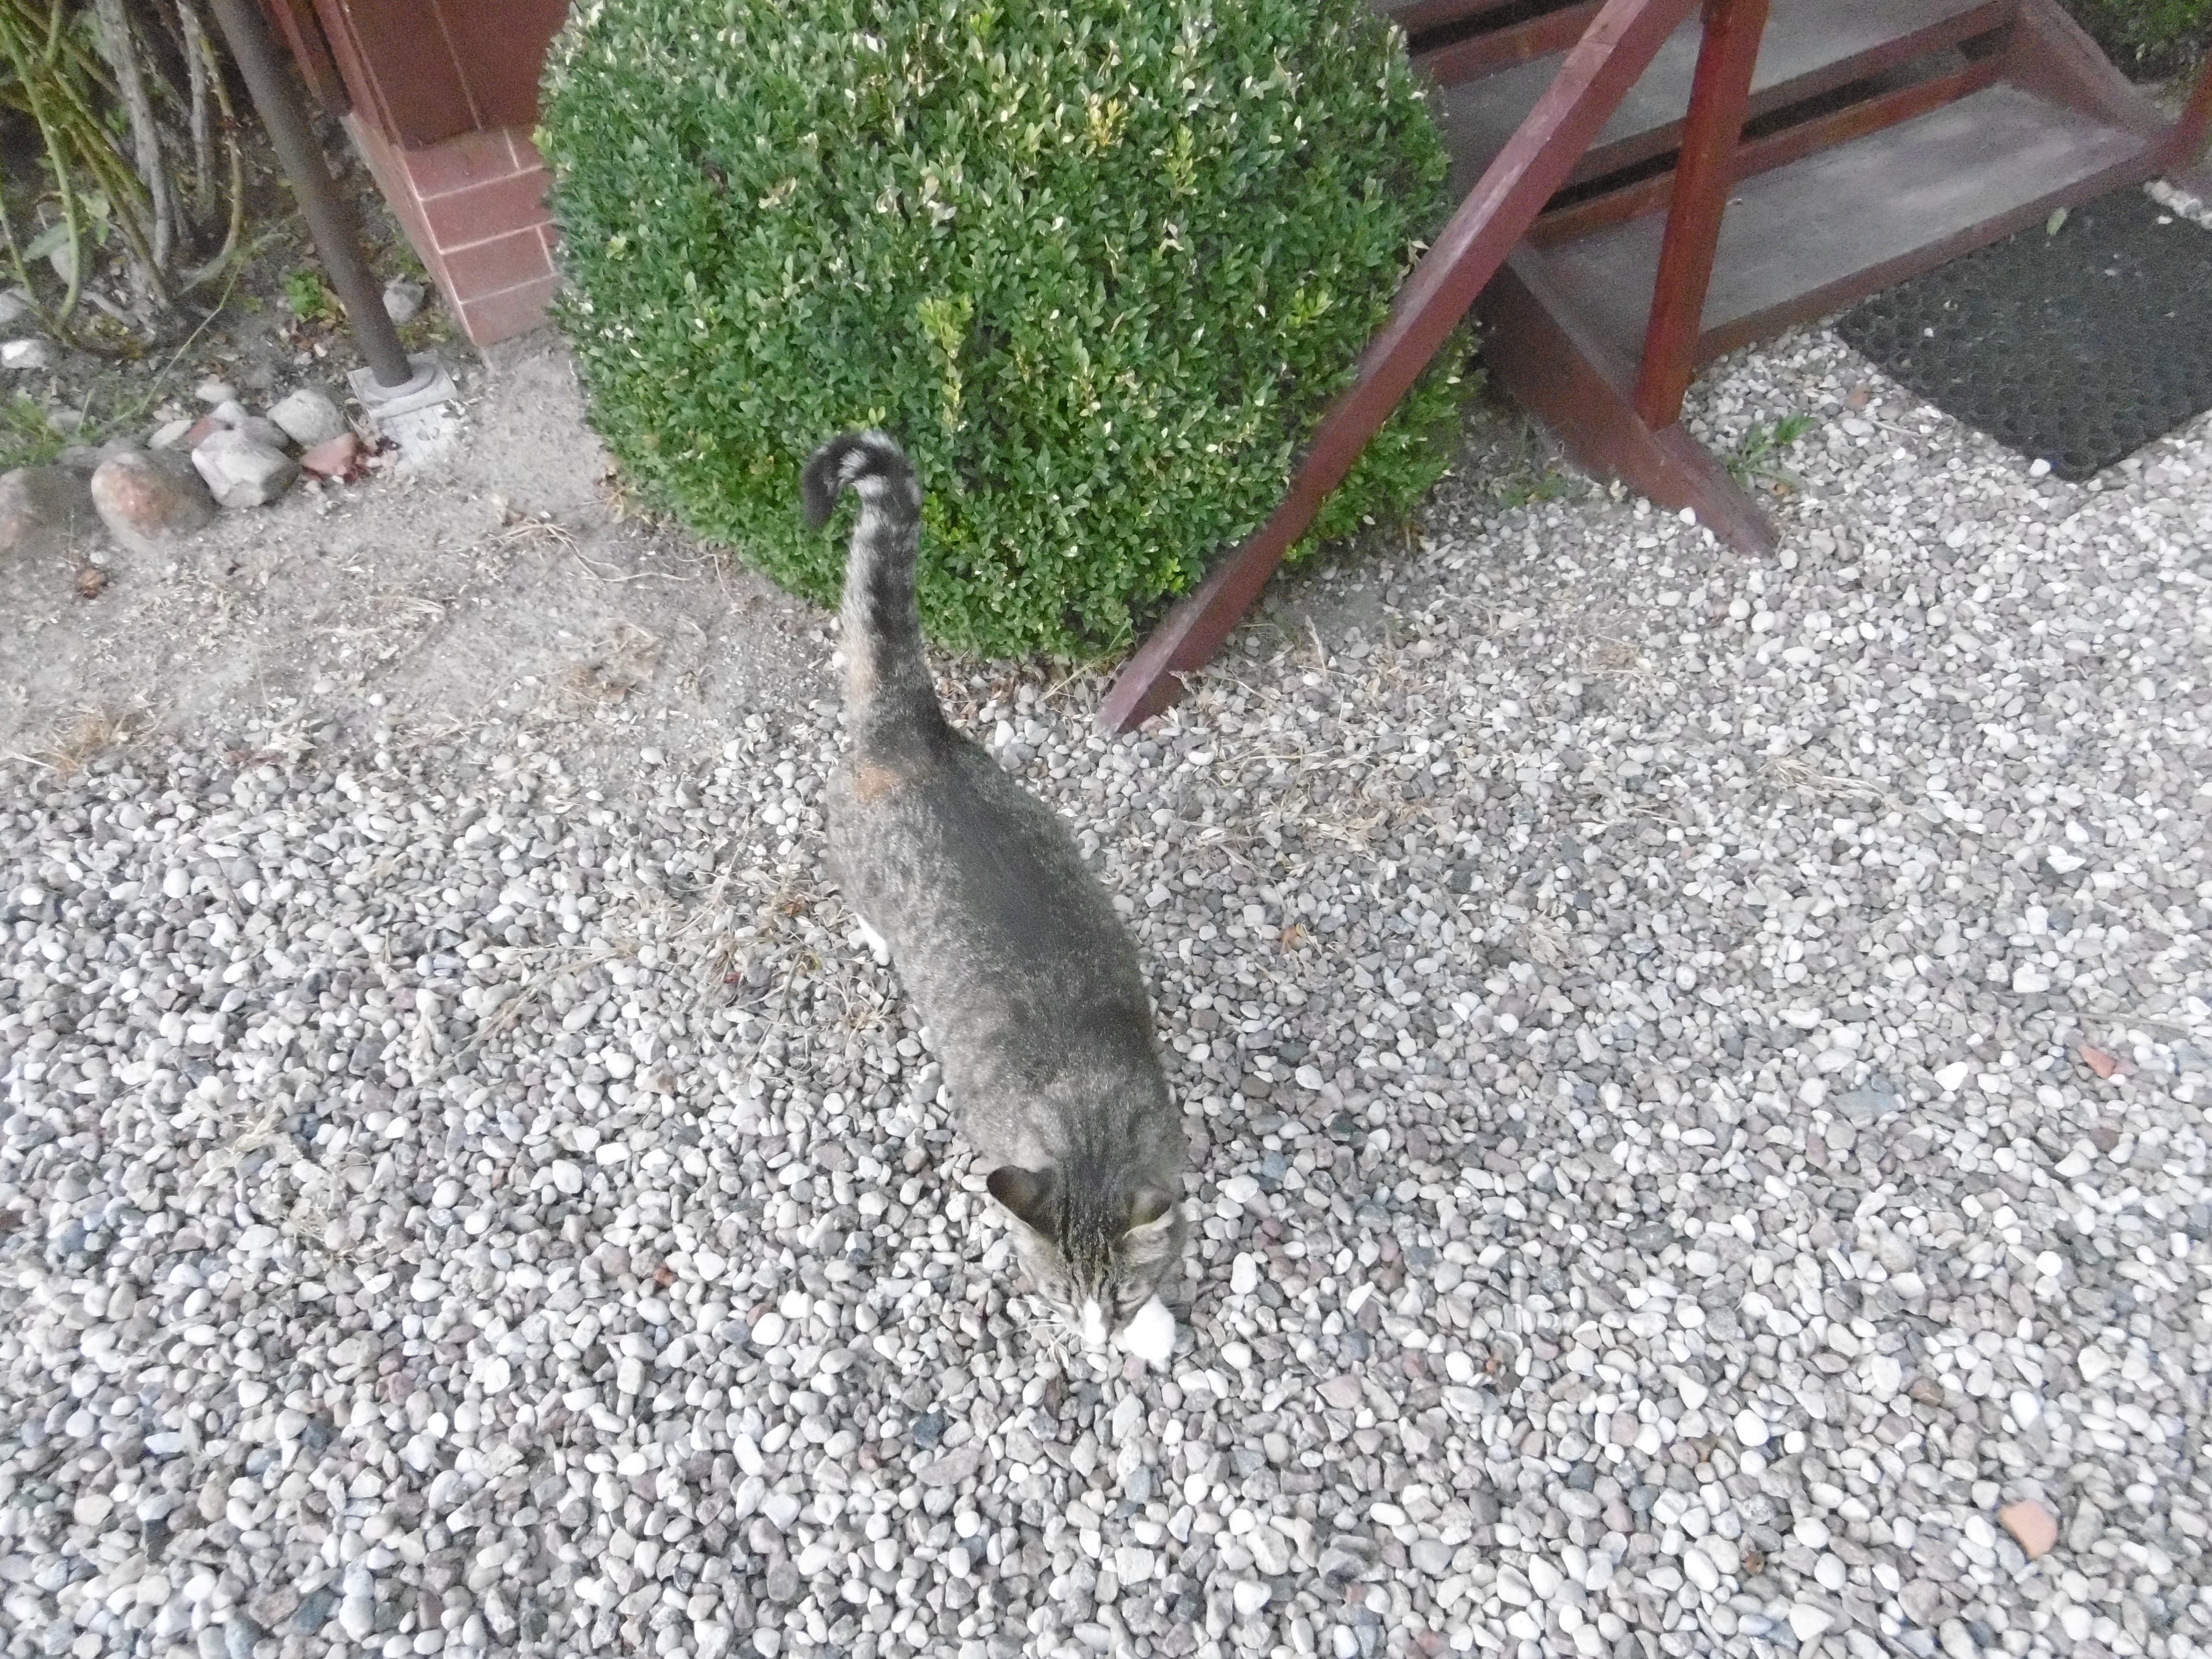 Wednesday: Hili dialogue « Why Evolution Is True